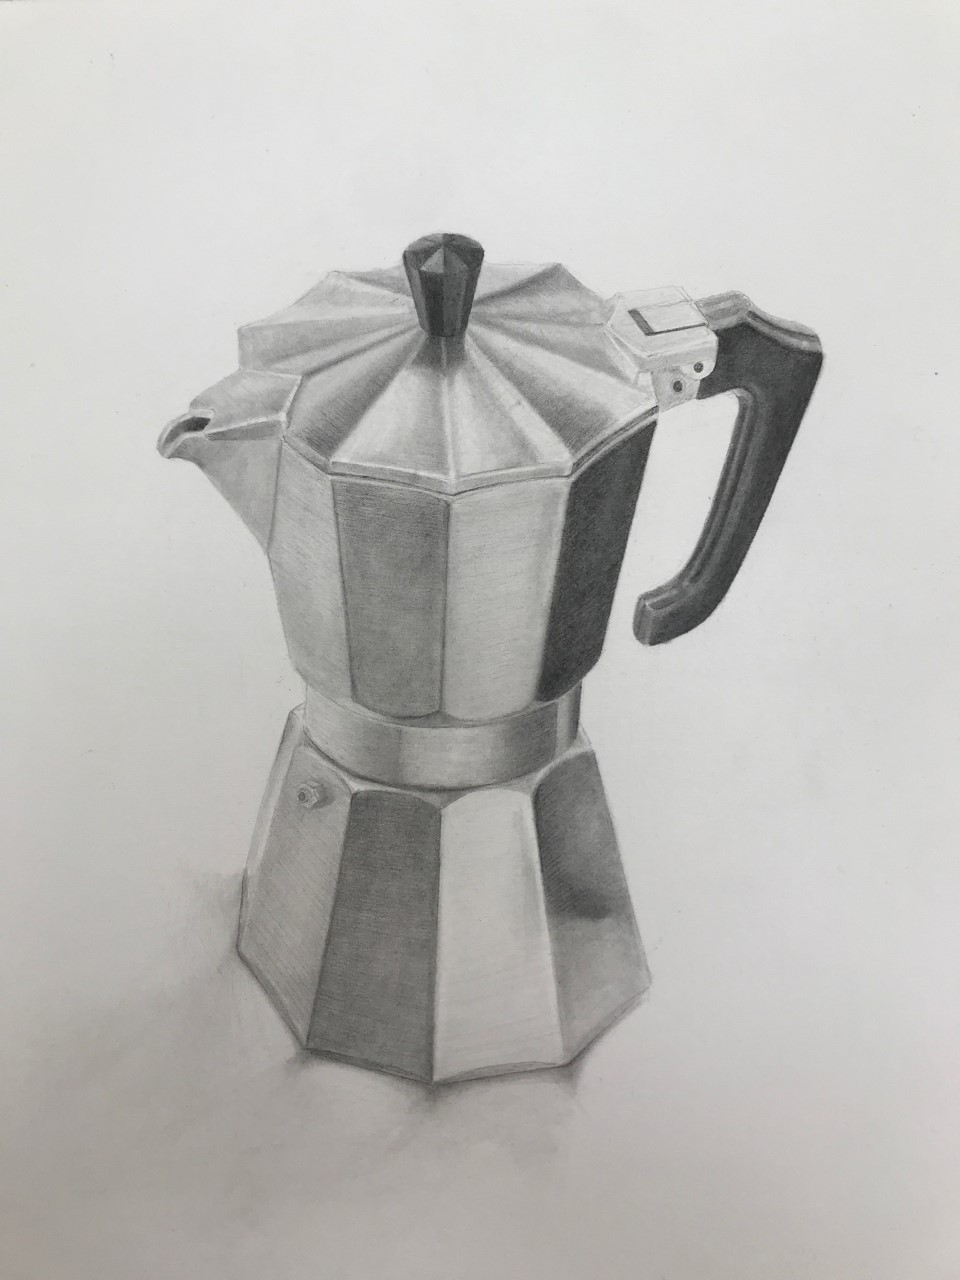 "'Faceted thing', 2020, graphite on paper, 14"" x 10"""